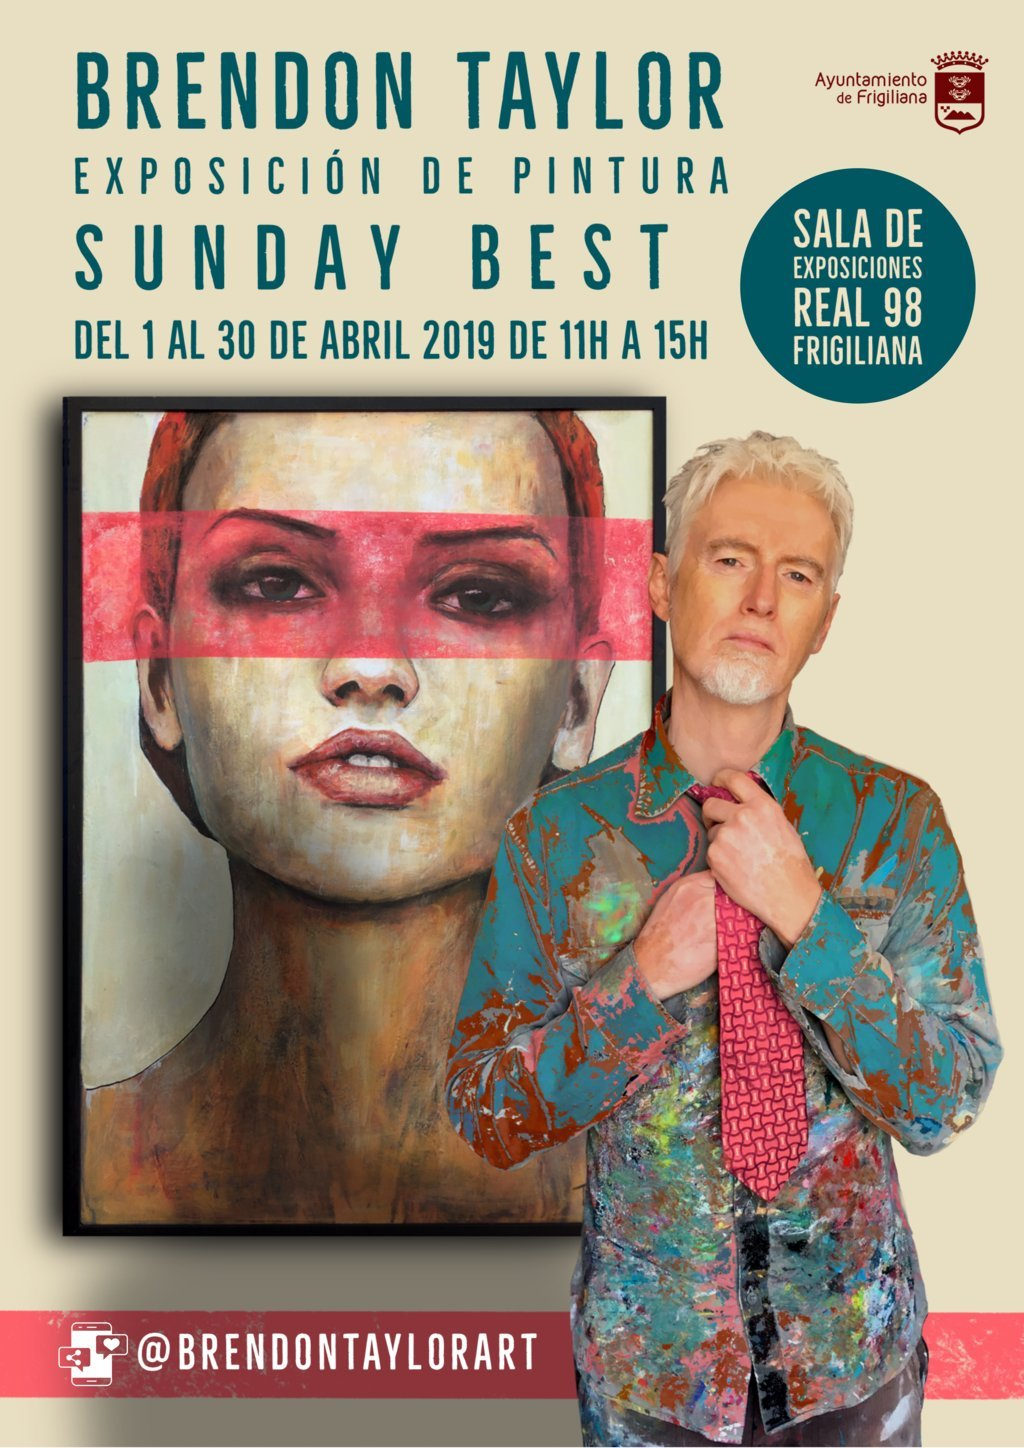 Exhibition 'Sunday Best' by Brendon Taylor in the Real 98 room